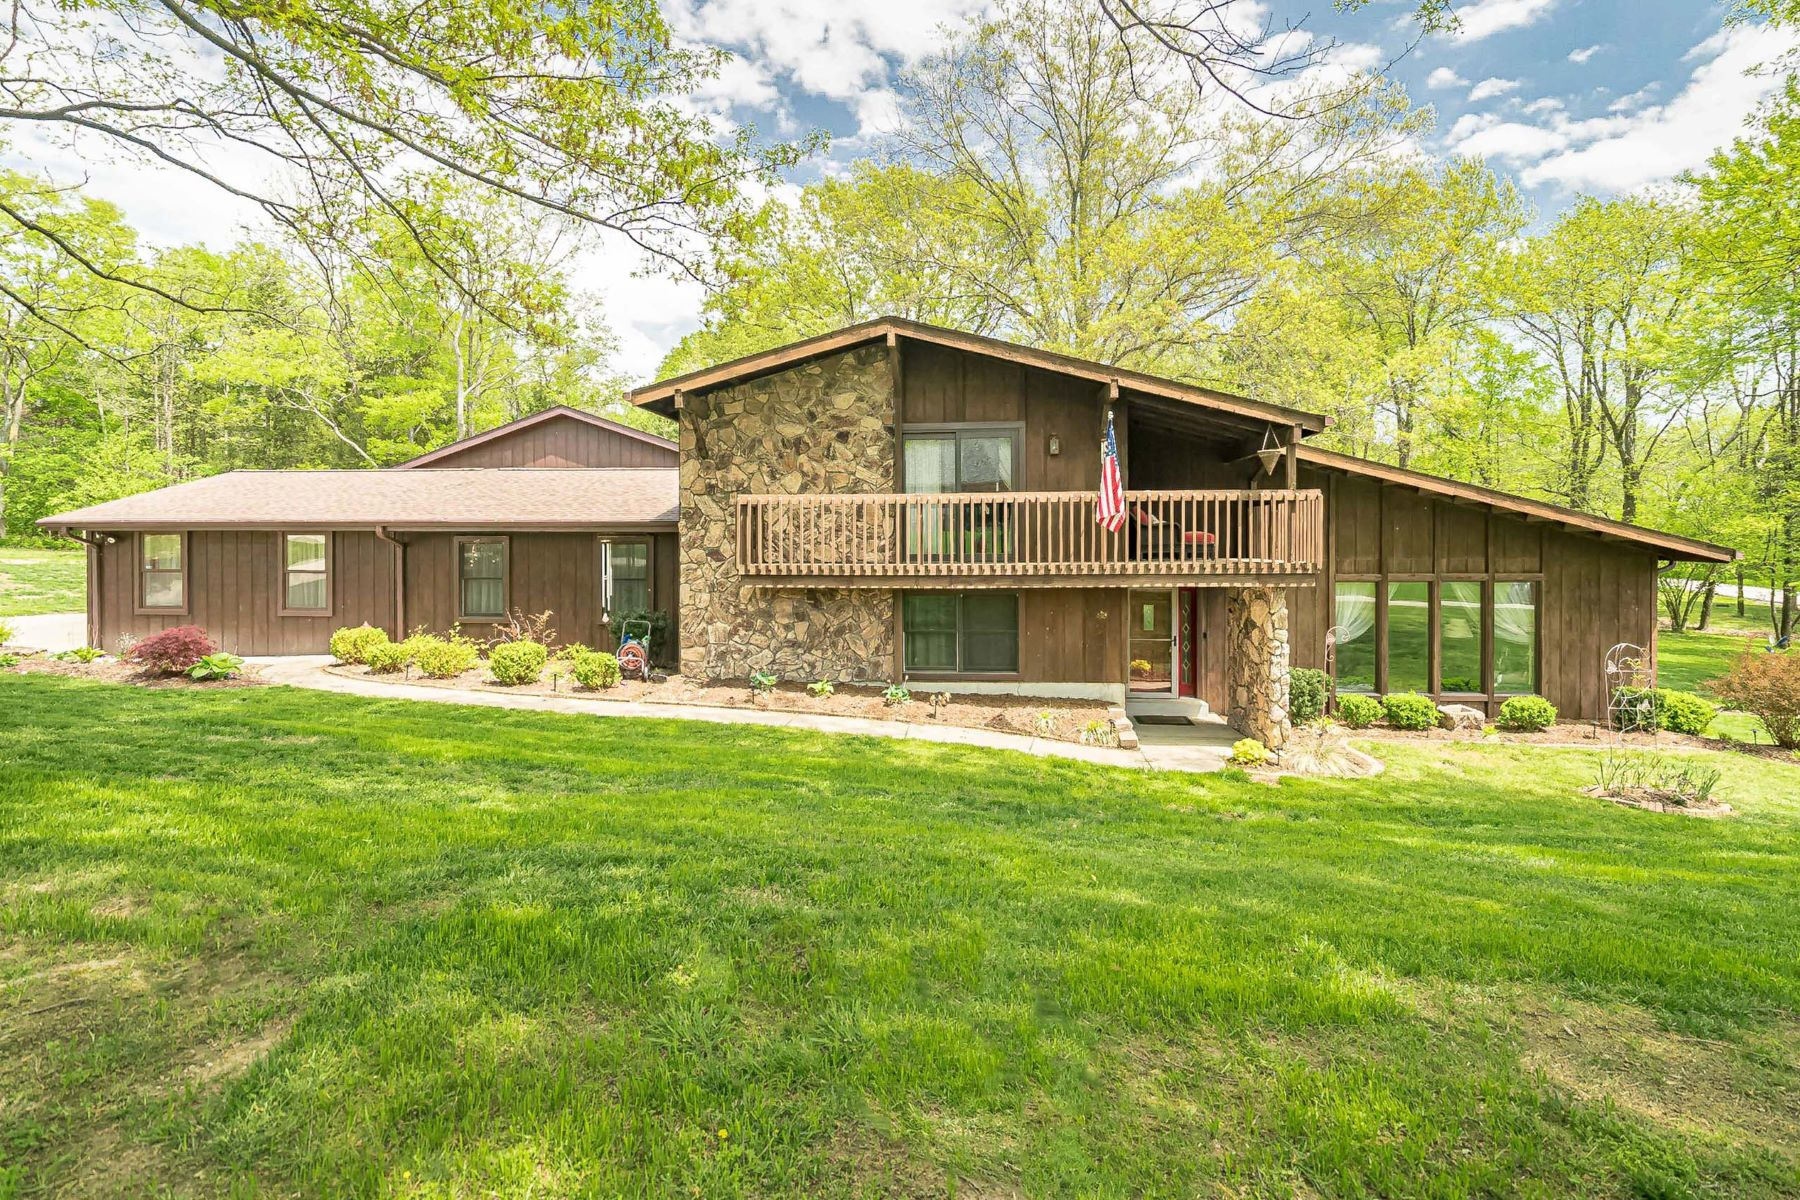 Single Family Homes for Active at Spacious Home on 1.95 Acres With a Ten-Car Garage! 708 De Vaca Lane Weldon Spring, Missouri 63304 United States